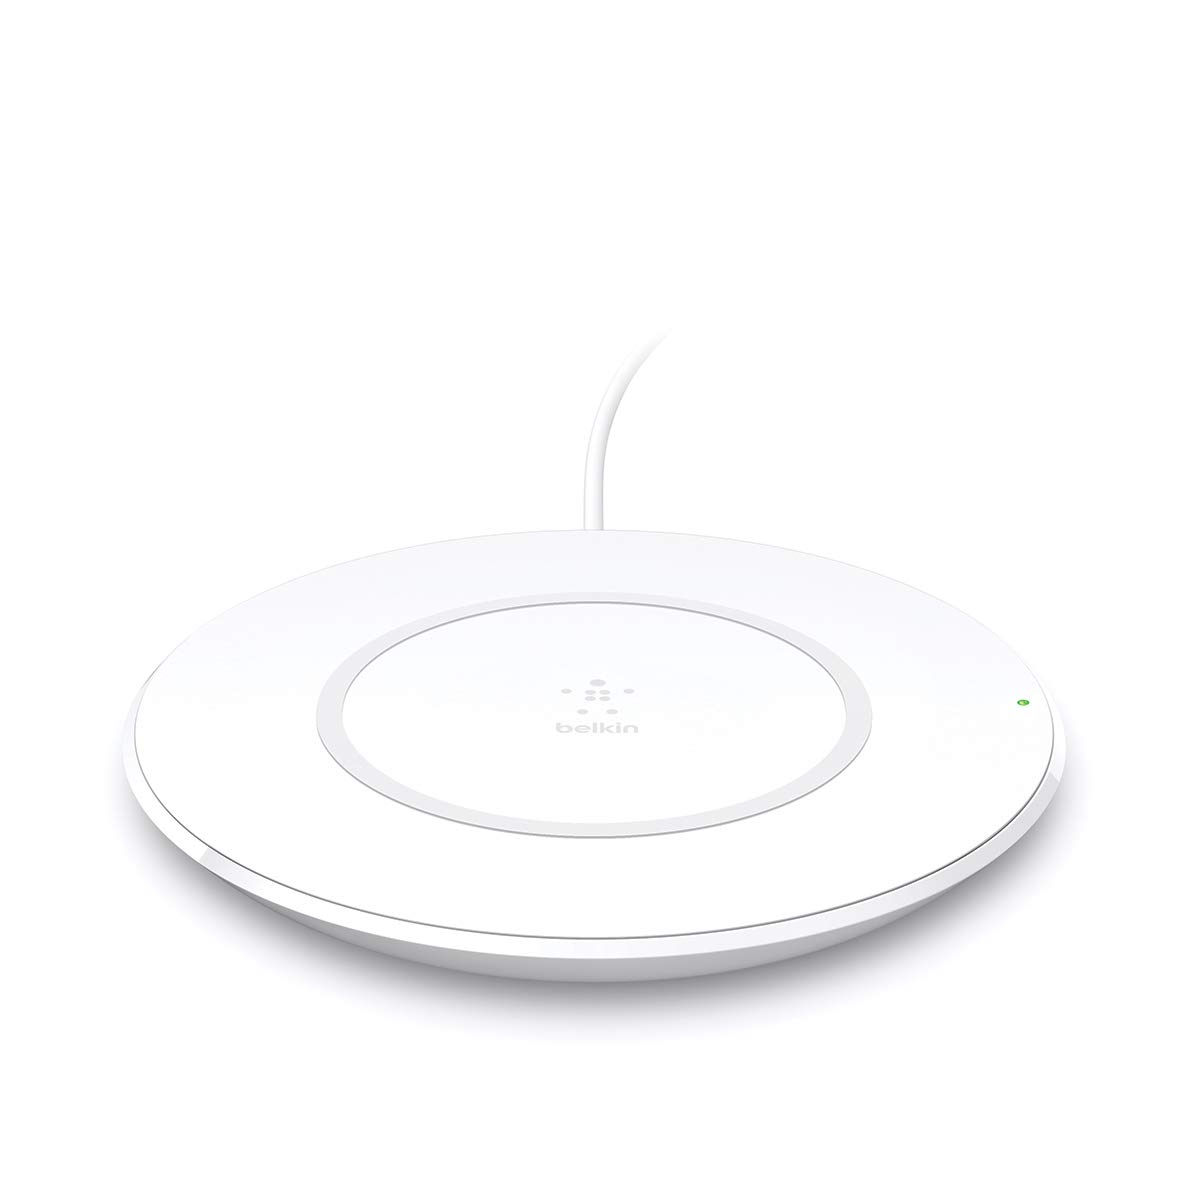 Belkin Boost Up Wireless Charging Pad 7.5W - Fast iPhone Wireless Charger for iPhone XS, XS Max, XR, X, 8, 8 Plus, AirPods 2 (Compatible w/ Samsung, LG, Sony, more) by Belkin